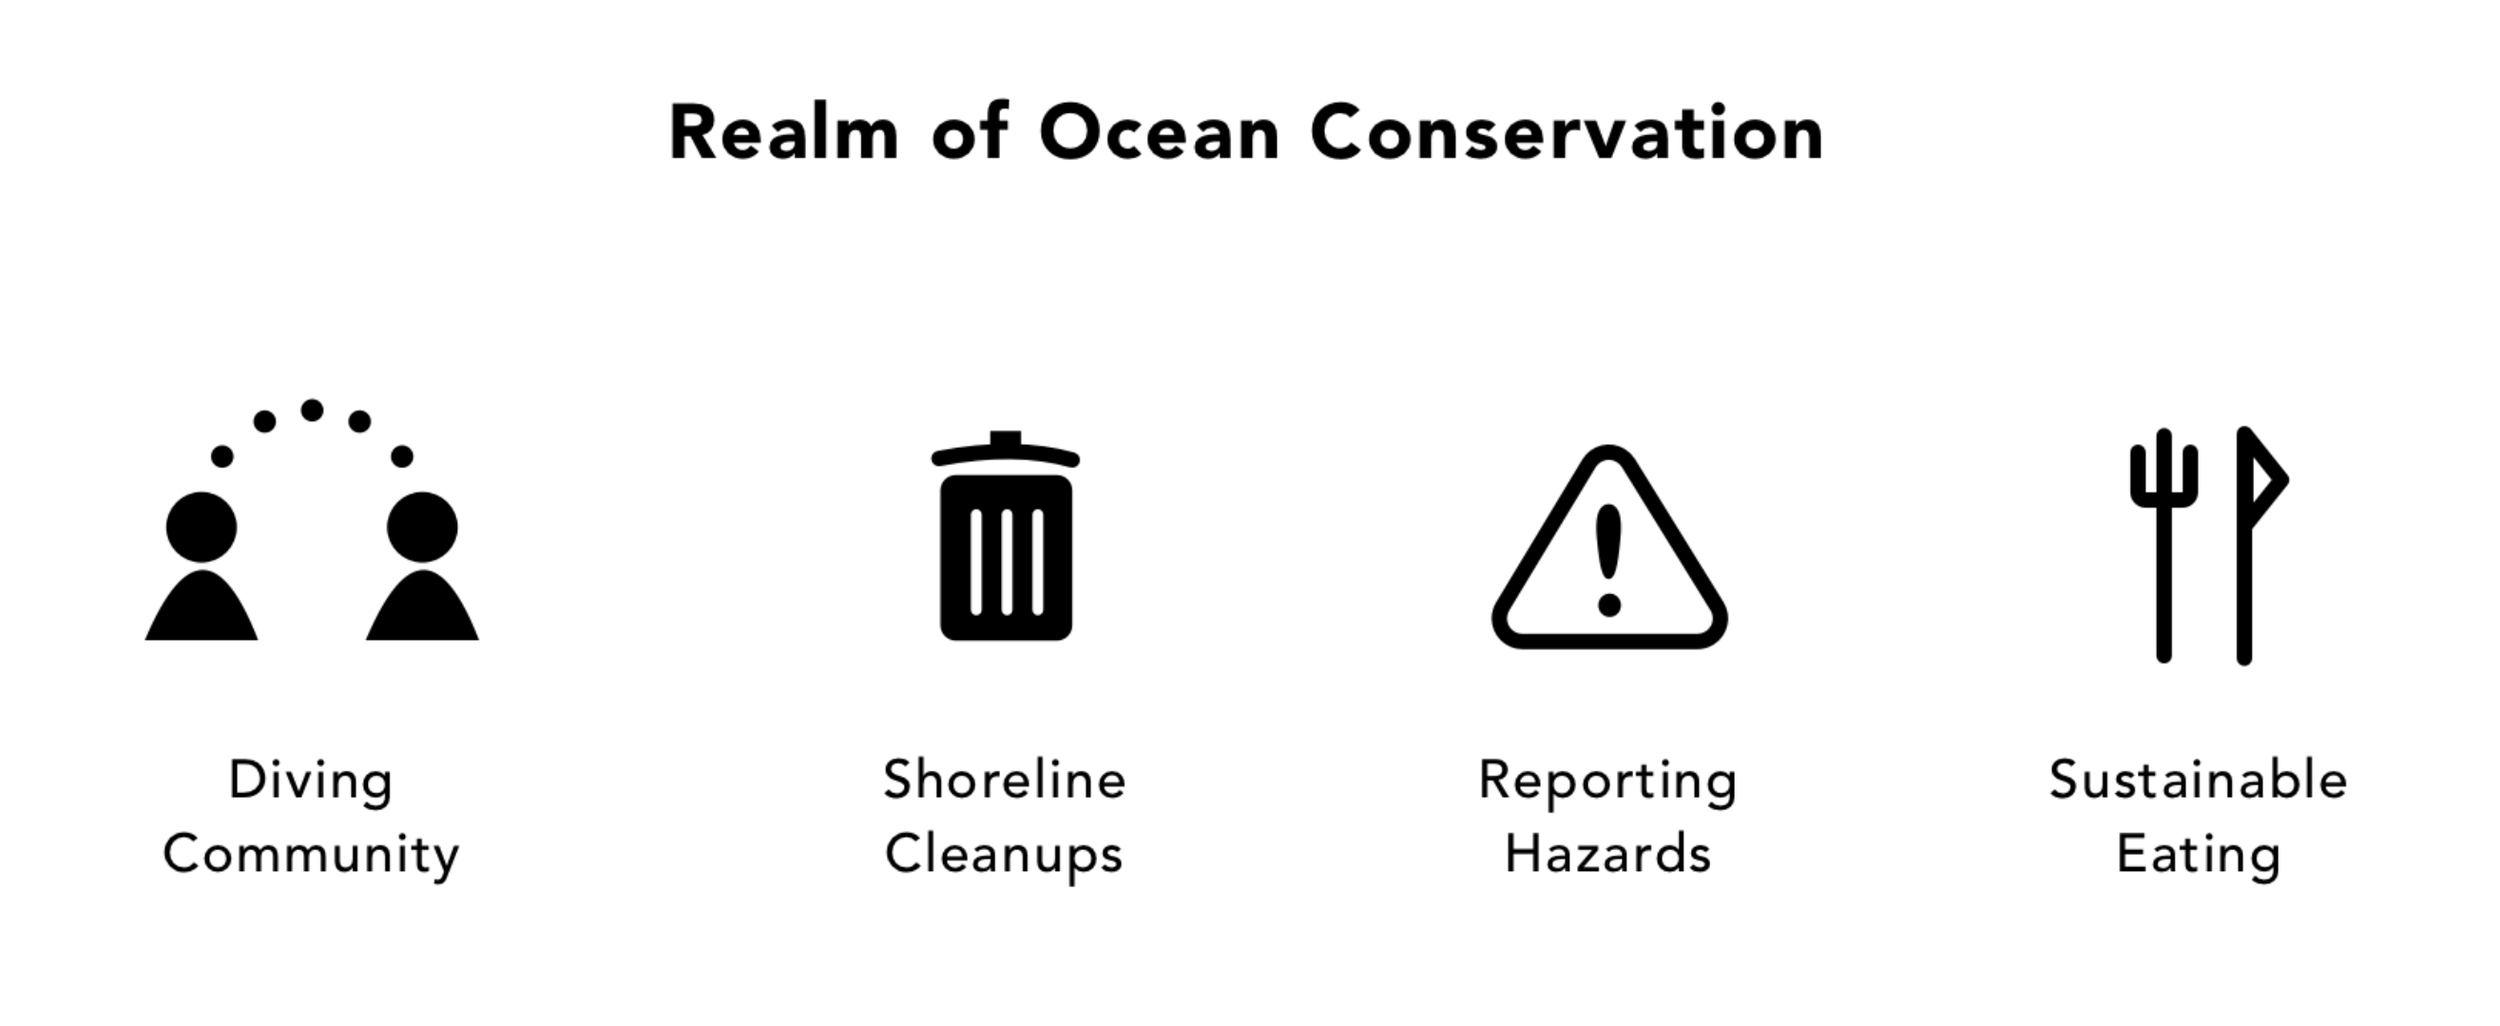 ocean-conservation-4areas.png